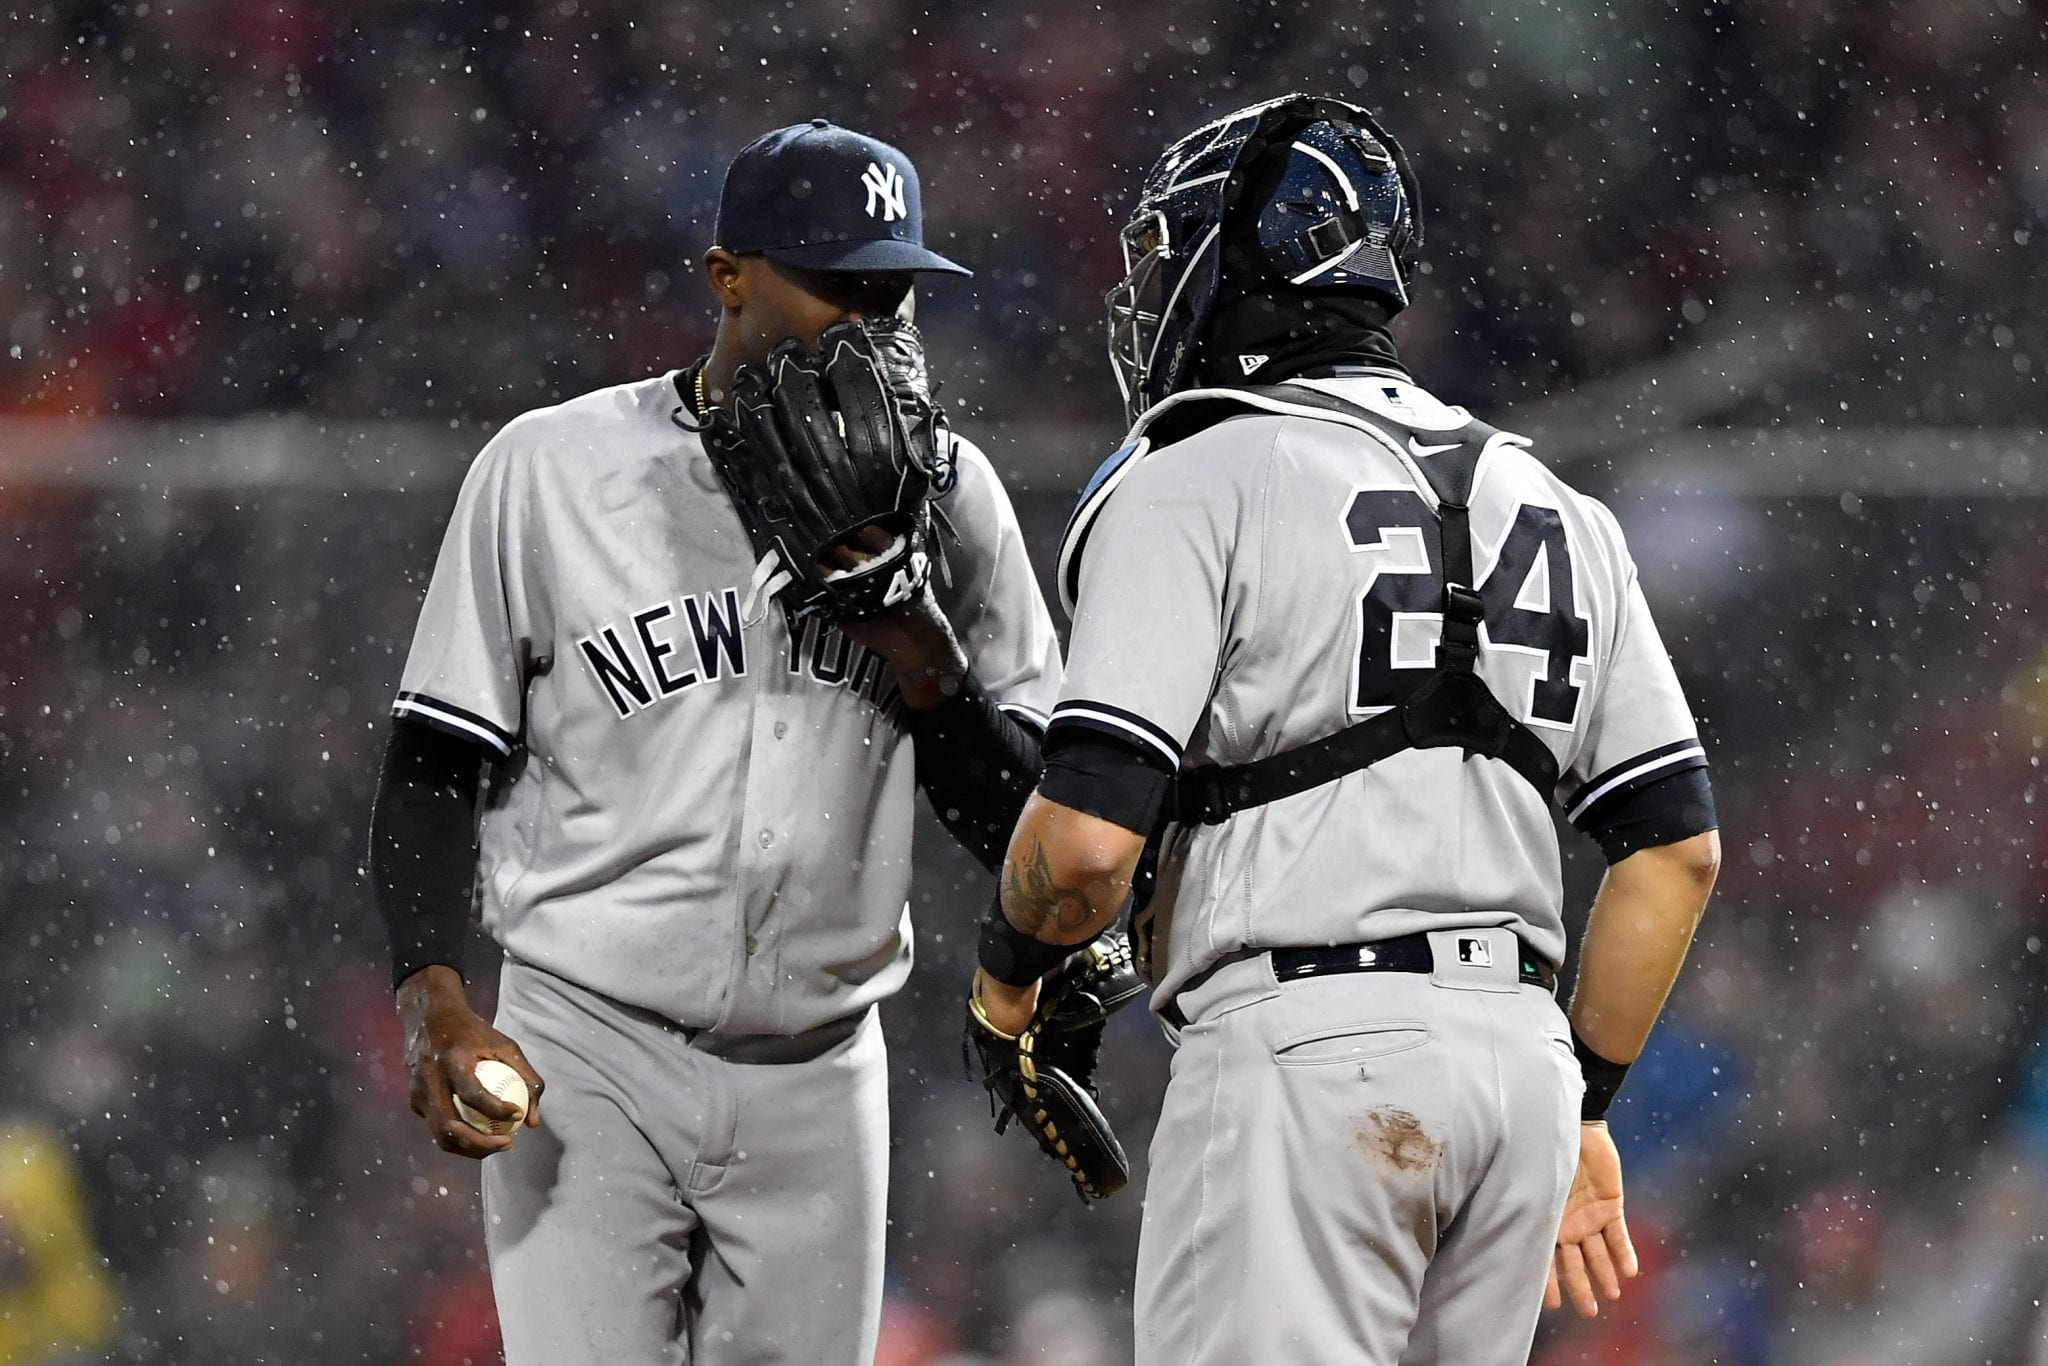 New York Yankees Analysis: Major takeaways from the first week of spring training